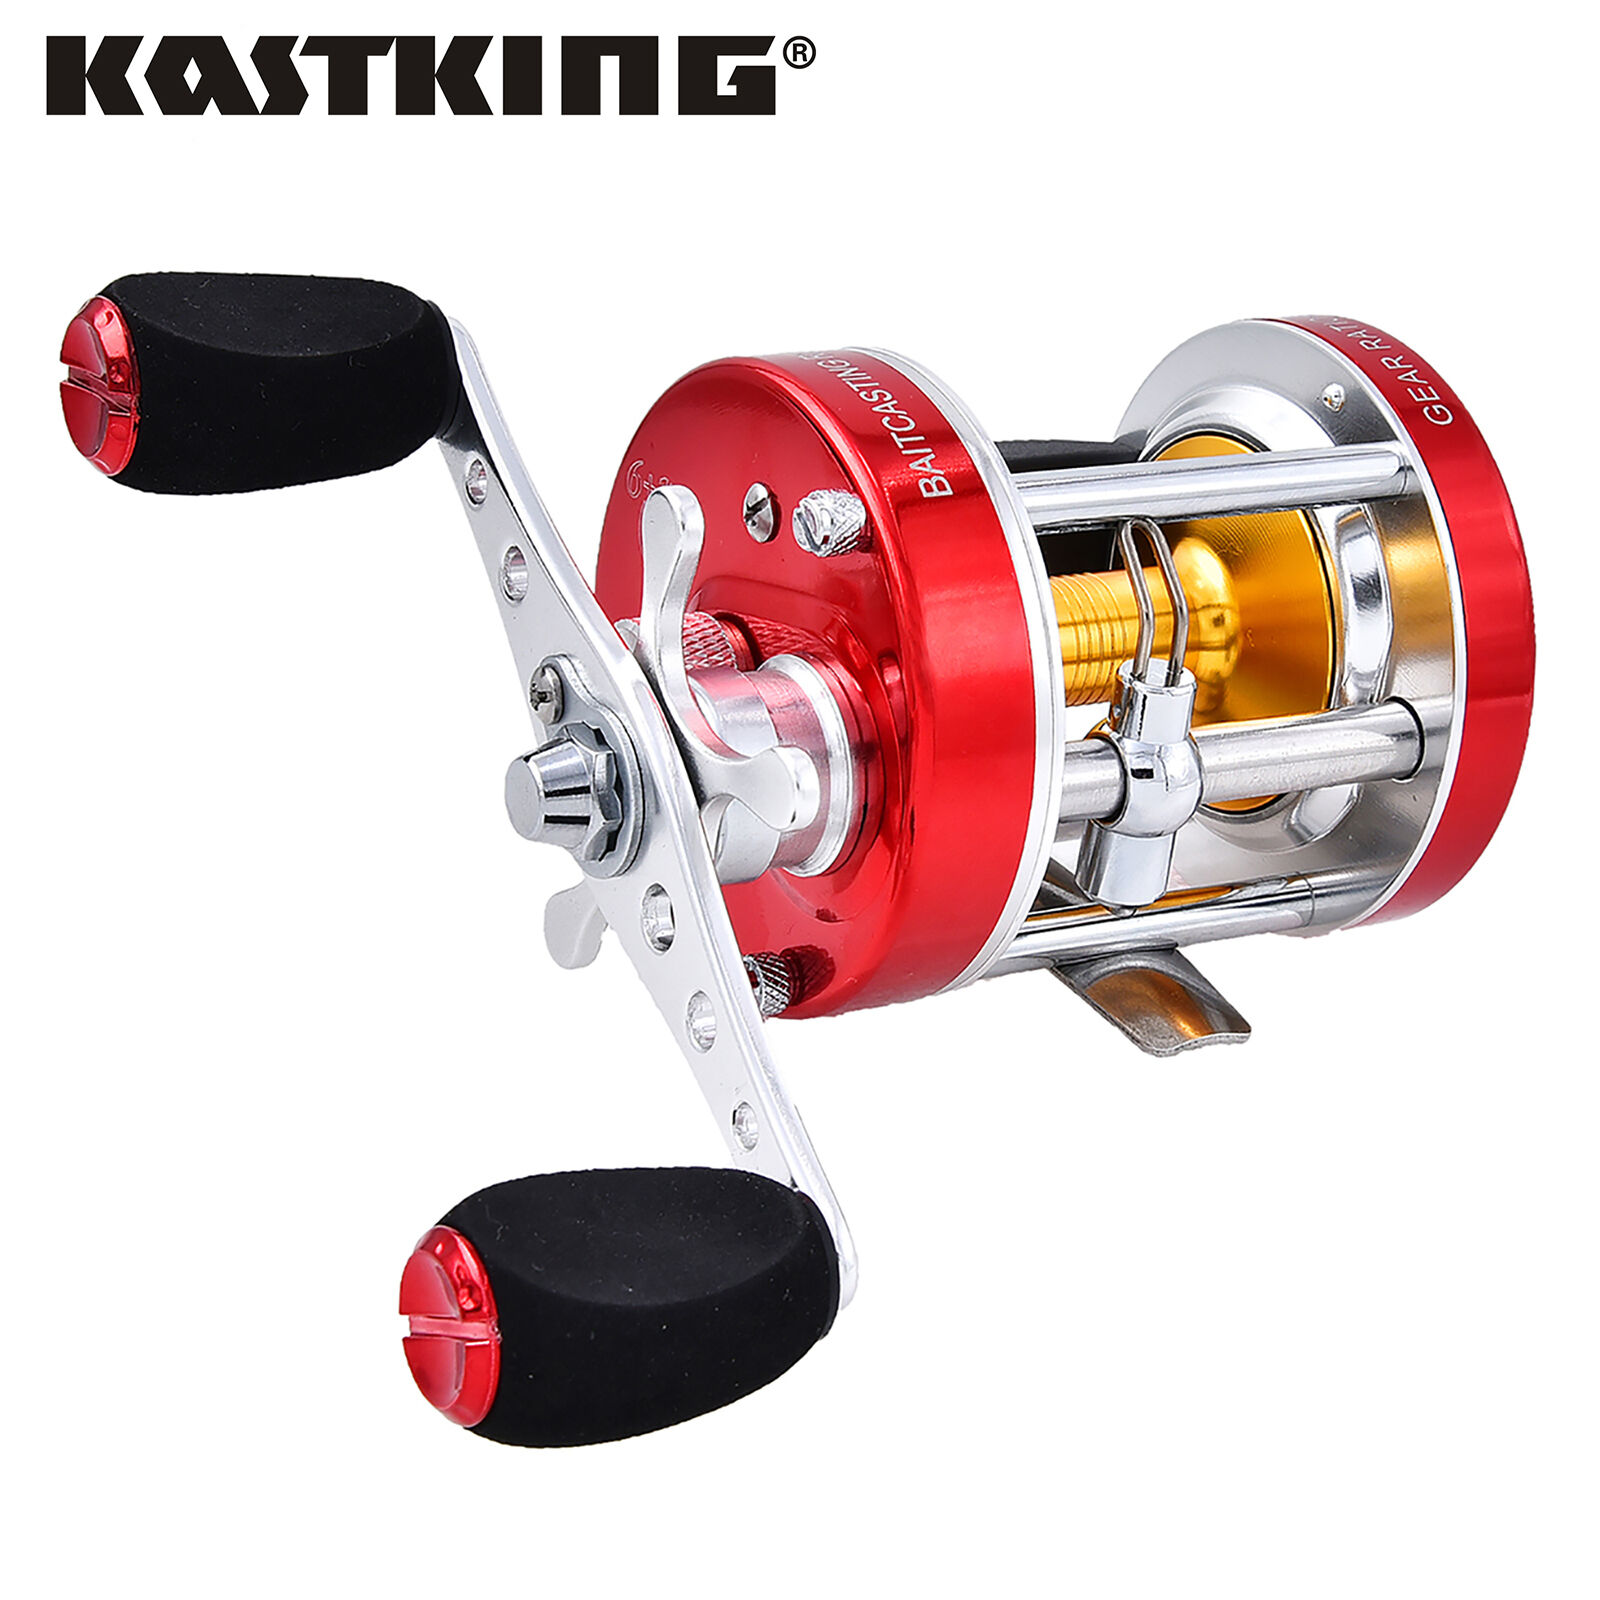 Kastre Rover Round Conventional Baitcast Reel Saltwater Fishing Reels